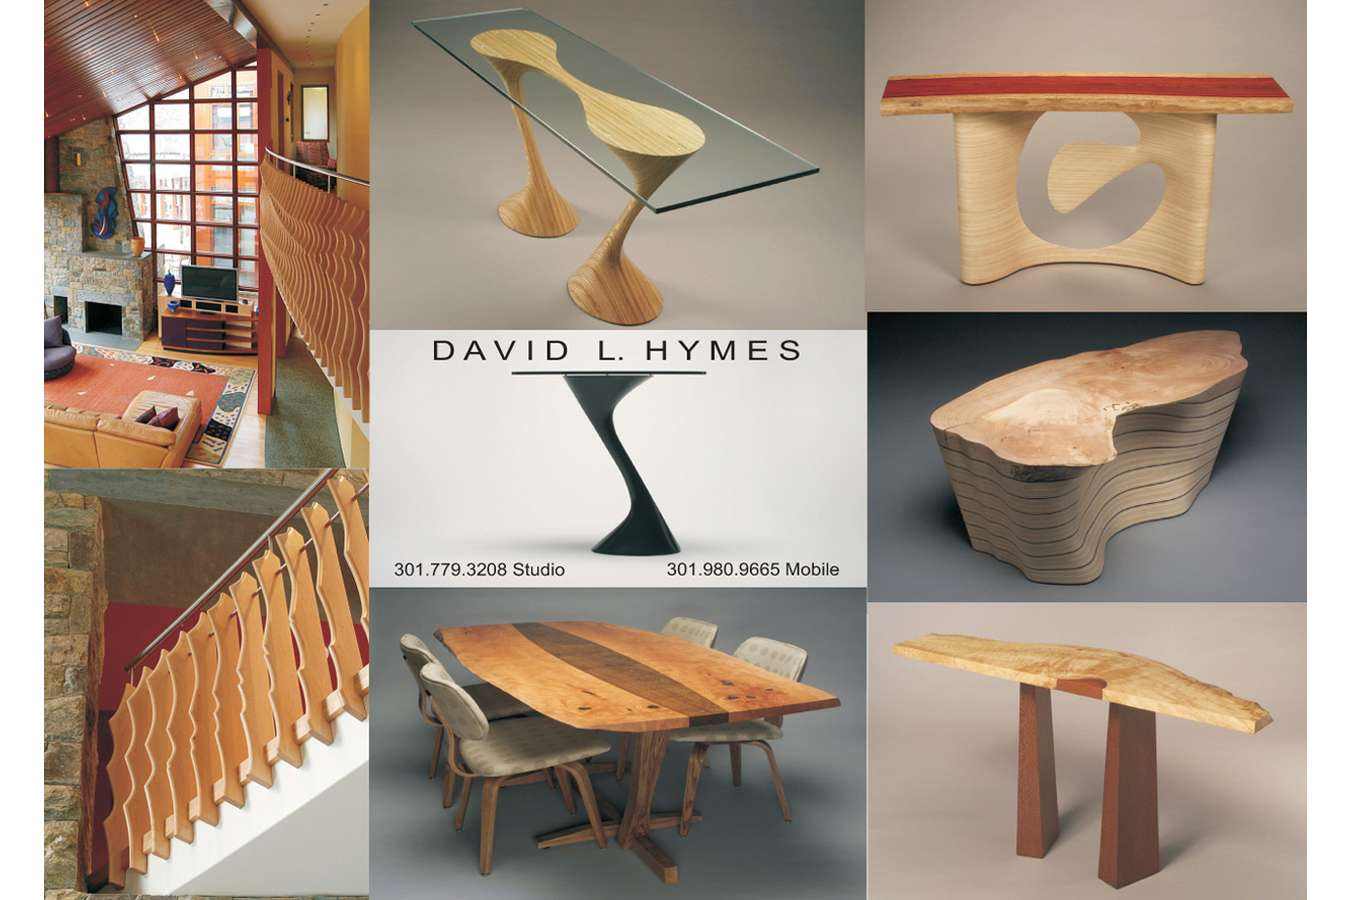 Hymes : Postcard accompanies custom portfolio package developed for furniture craftsman